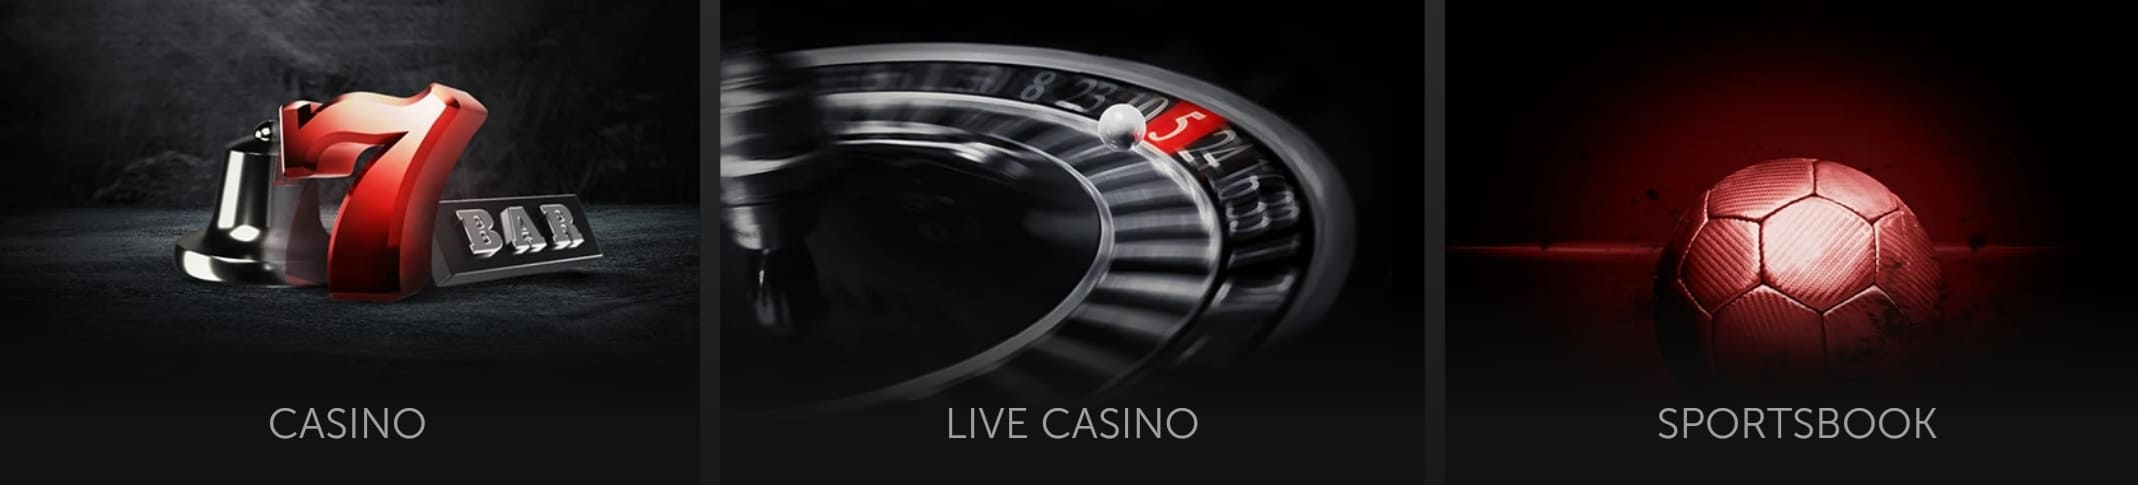 Betsafe Casino Games With Live Casino and Sportsbook